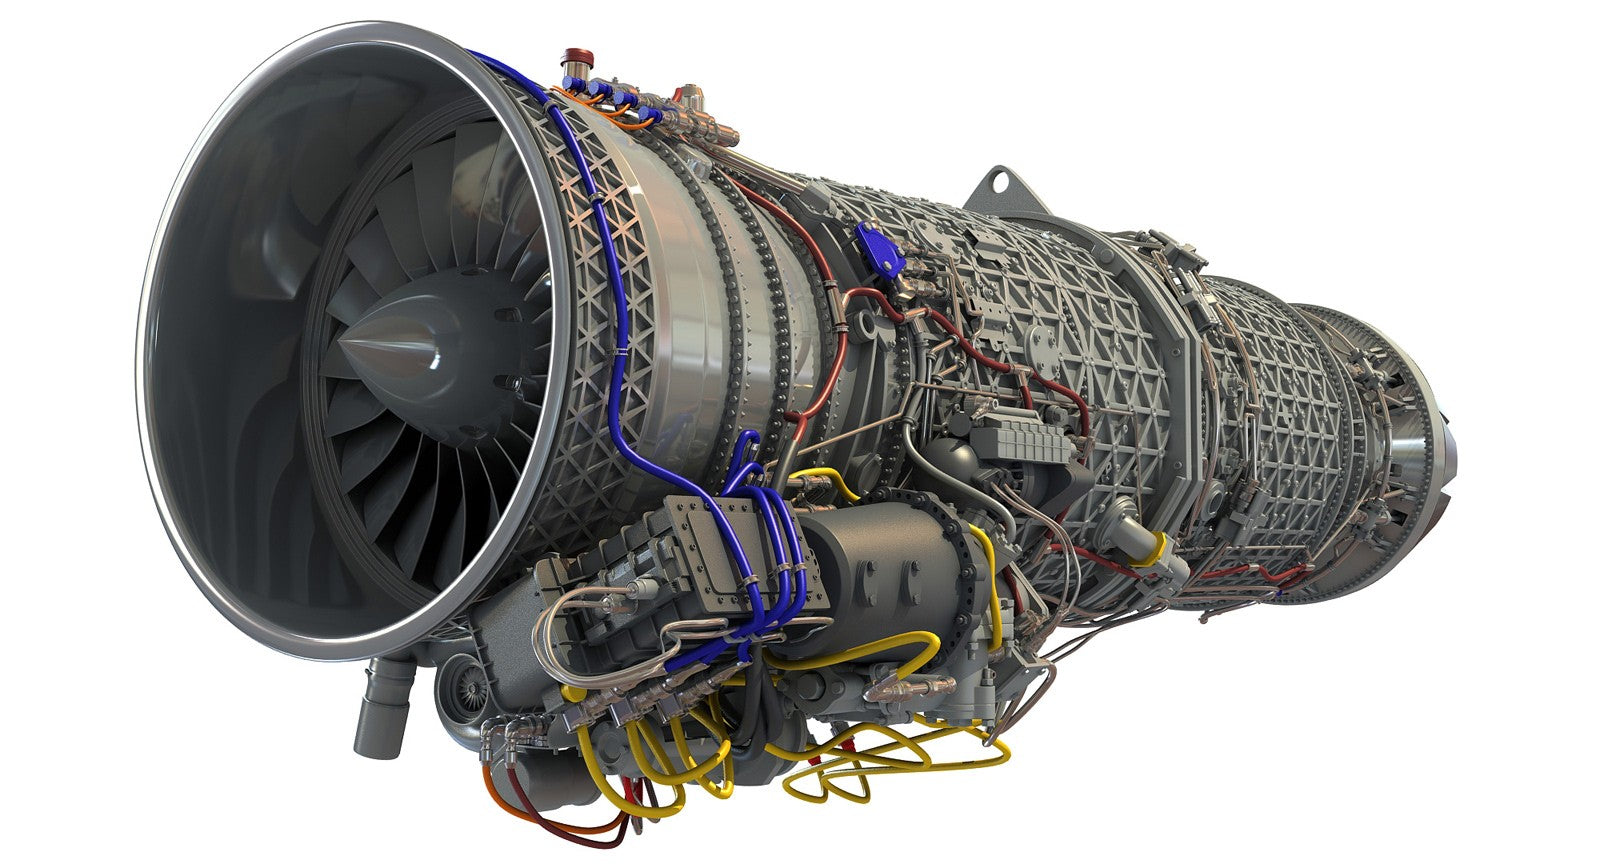 Eurojet Turbofan Jet Engine 3D Model